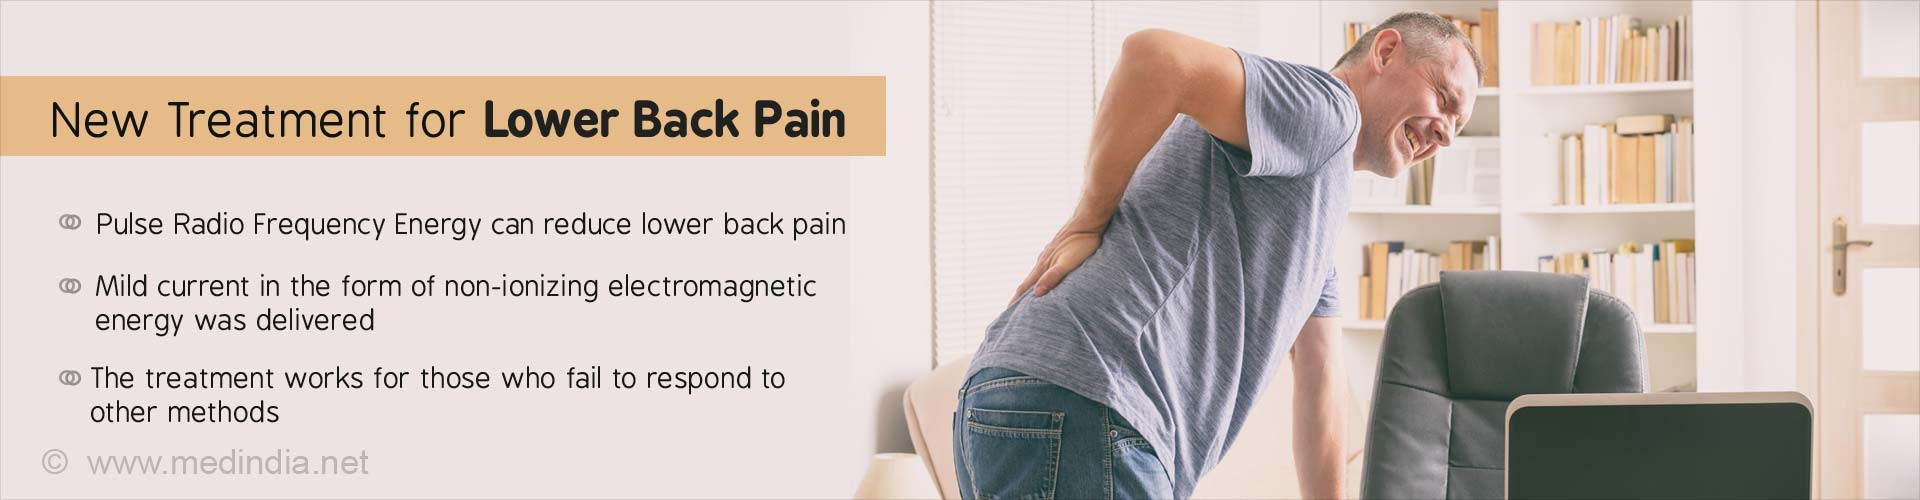 Low Back Pain Treatment With Mild Electric Current